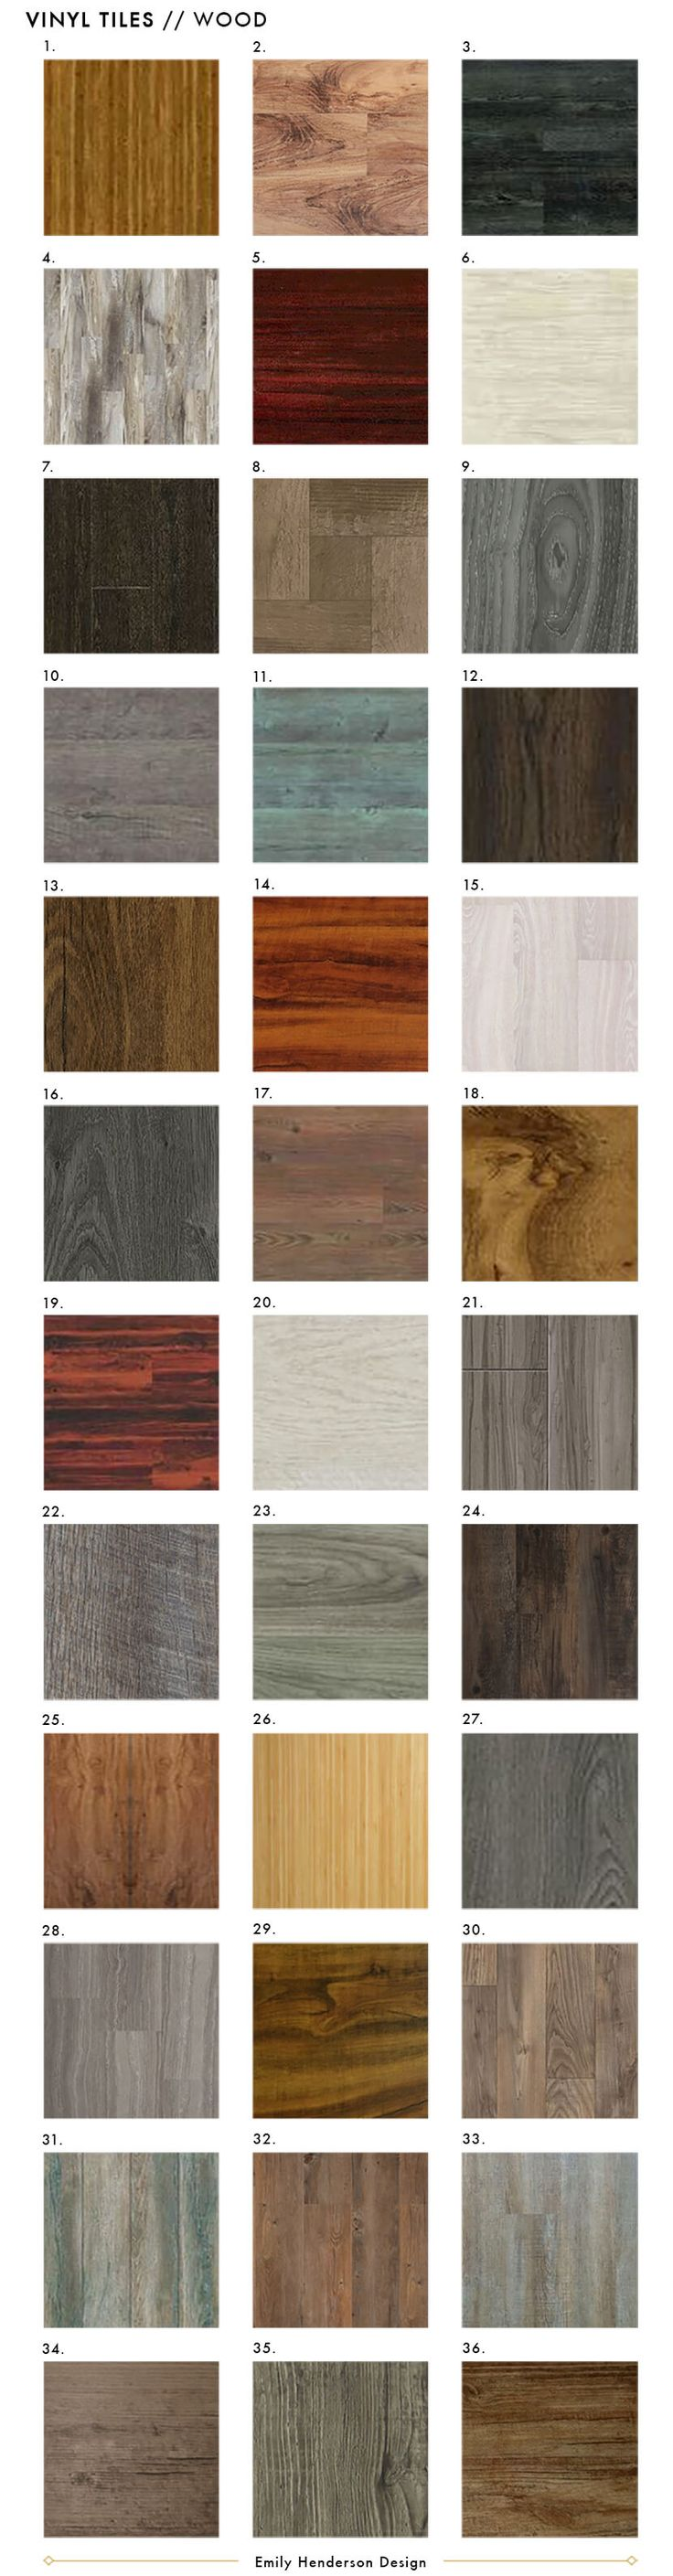 Best Affordable Faux Wood Vinyl Tile